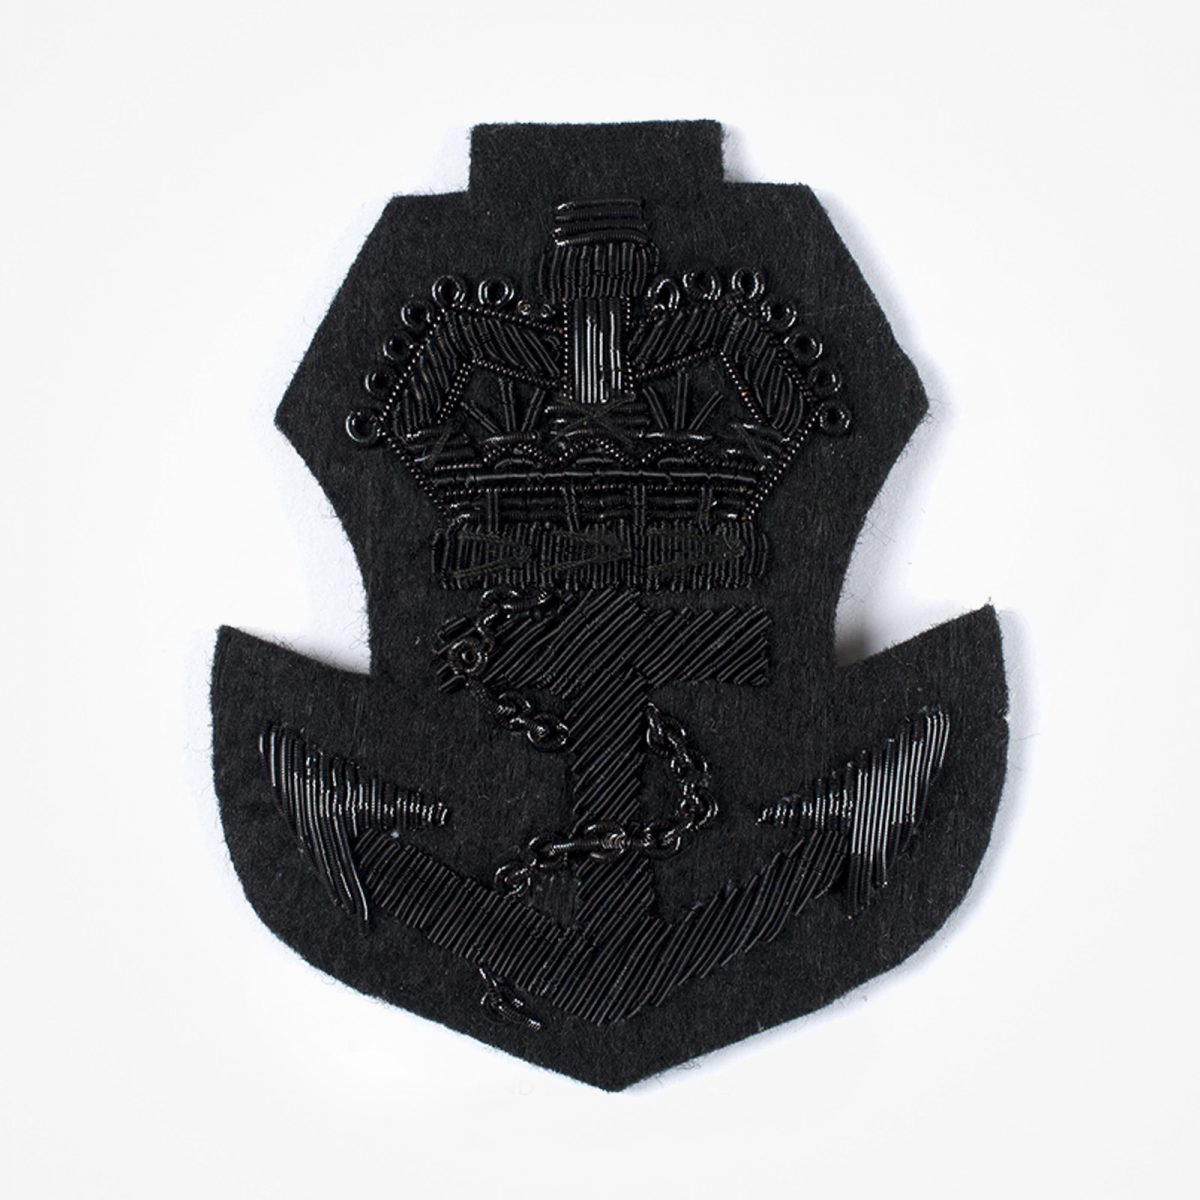 Black Anchor with Crown - Black Anchor Embroidered patch Fashionable 3D embroidered look Made by skilled artisans Bullion wire and silk thread hand Stitched on Black colour Felt Available in gold and silver colors Size = 75mm height x 63mm width sew-on backing: Perfect for caps, sports jacket, leather jackets, blazer coat, Blazer Pocket, shirts uniforms, Accessories and many More Pin backing: easy to removable 3